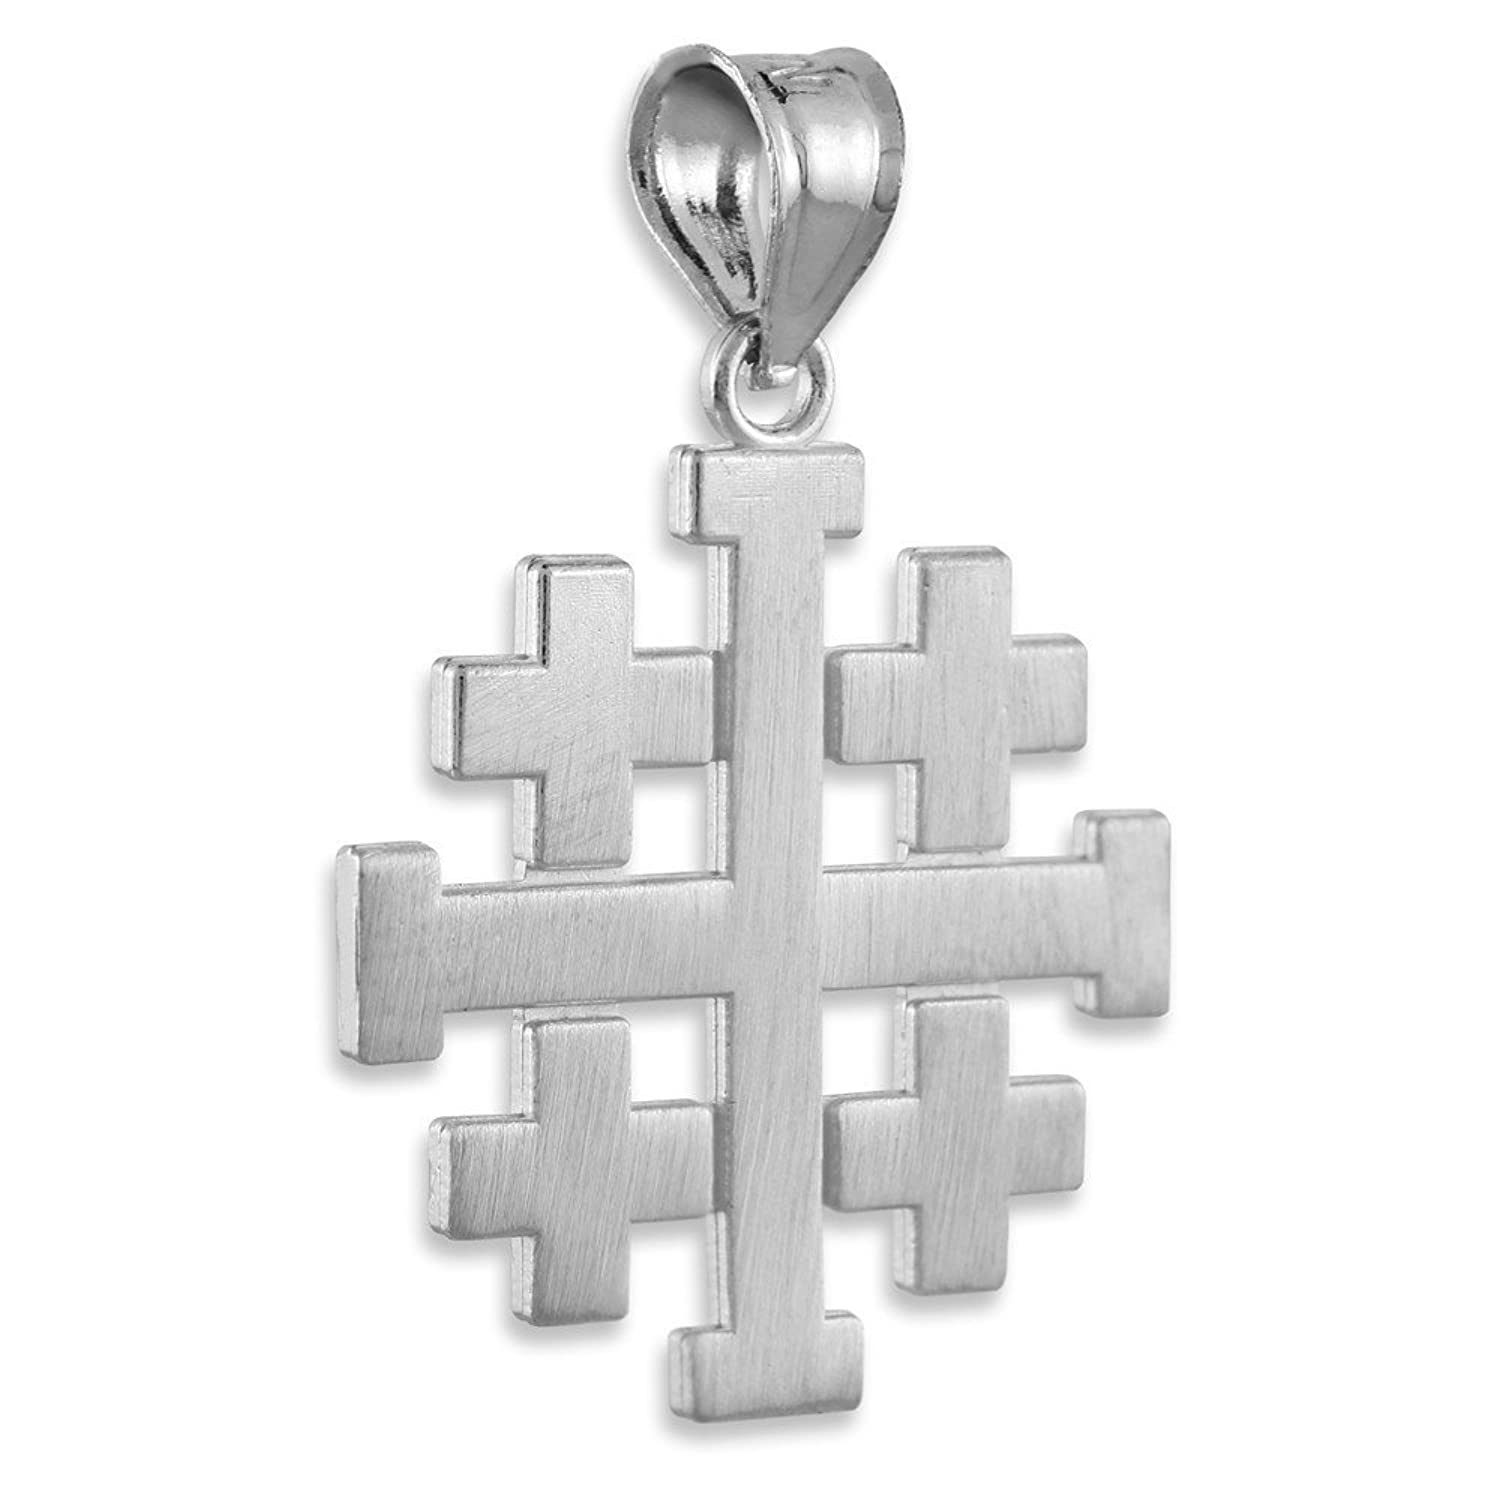 in craft jerusalem shimbra il ethiopia cross by pendant jewelry making made sold listing fullxfull